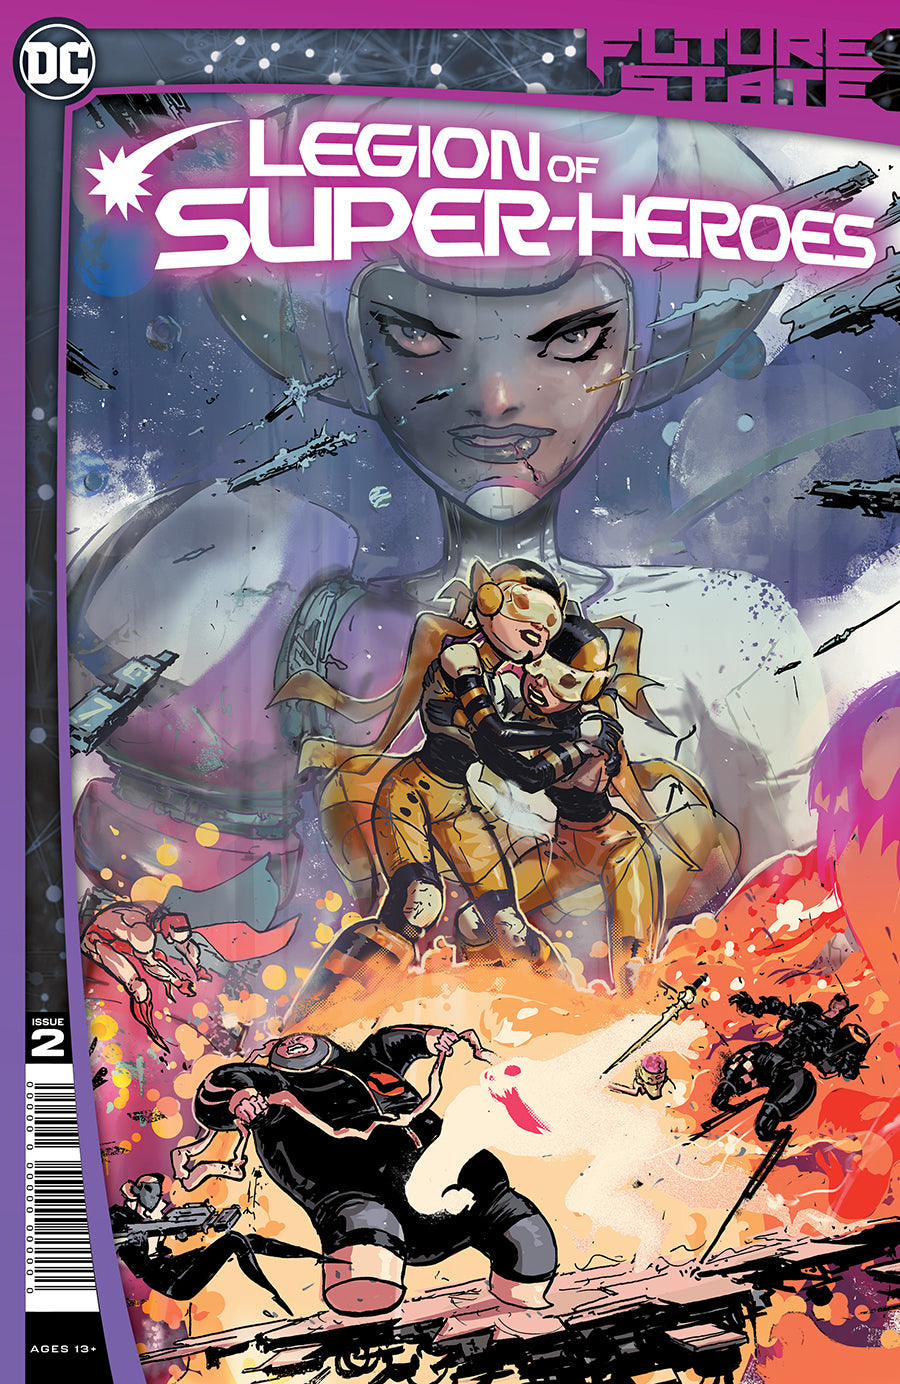 FUTURE STATE LEGION OF SUPER-HEROES #2 (OF 2) CVR A RILEY ROSSMO